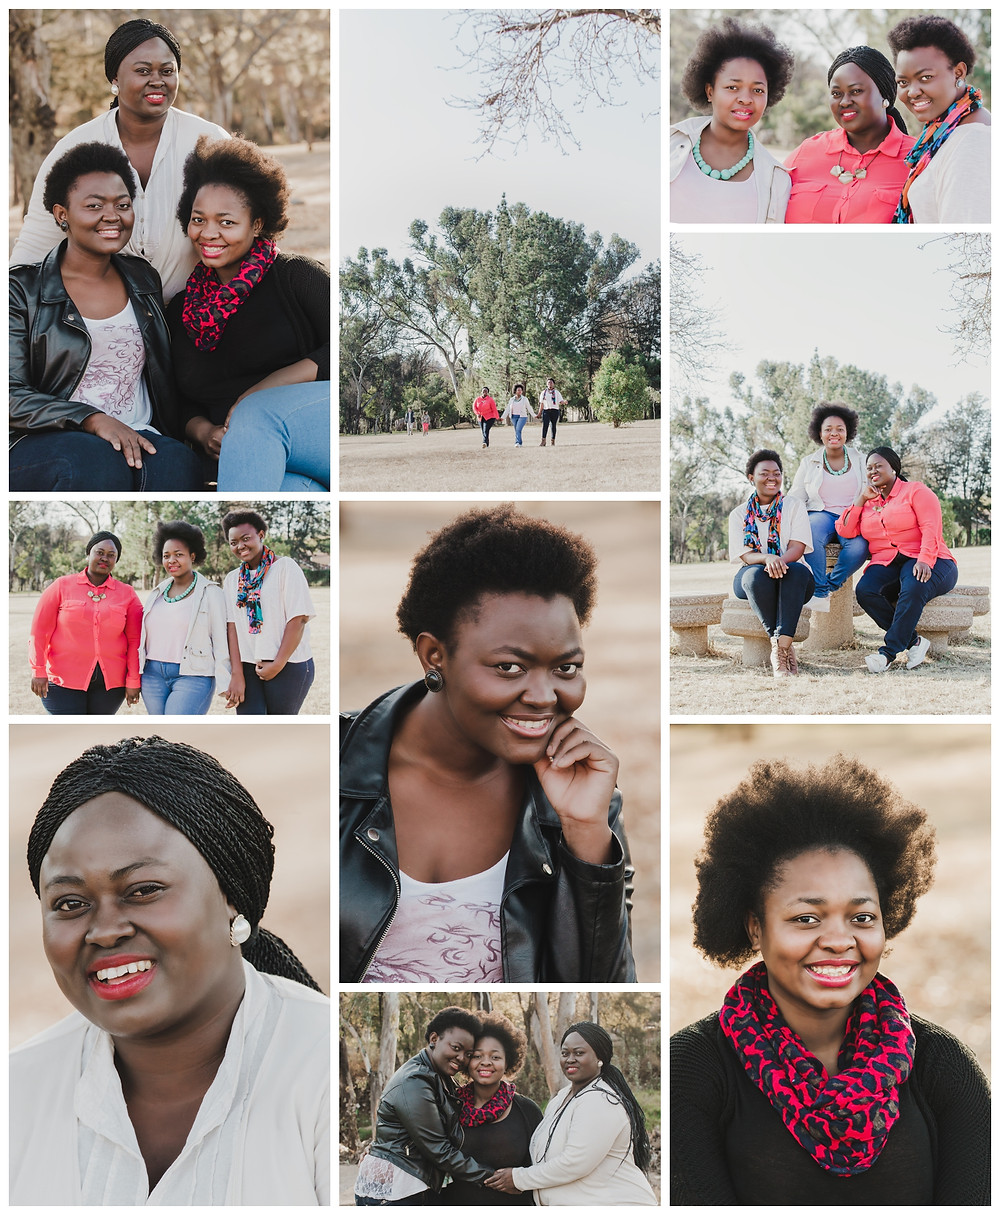 Mpho and sisters family portraits shoot